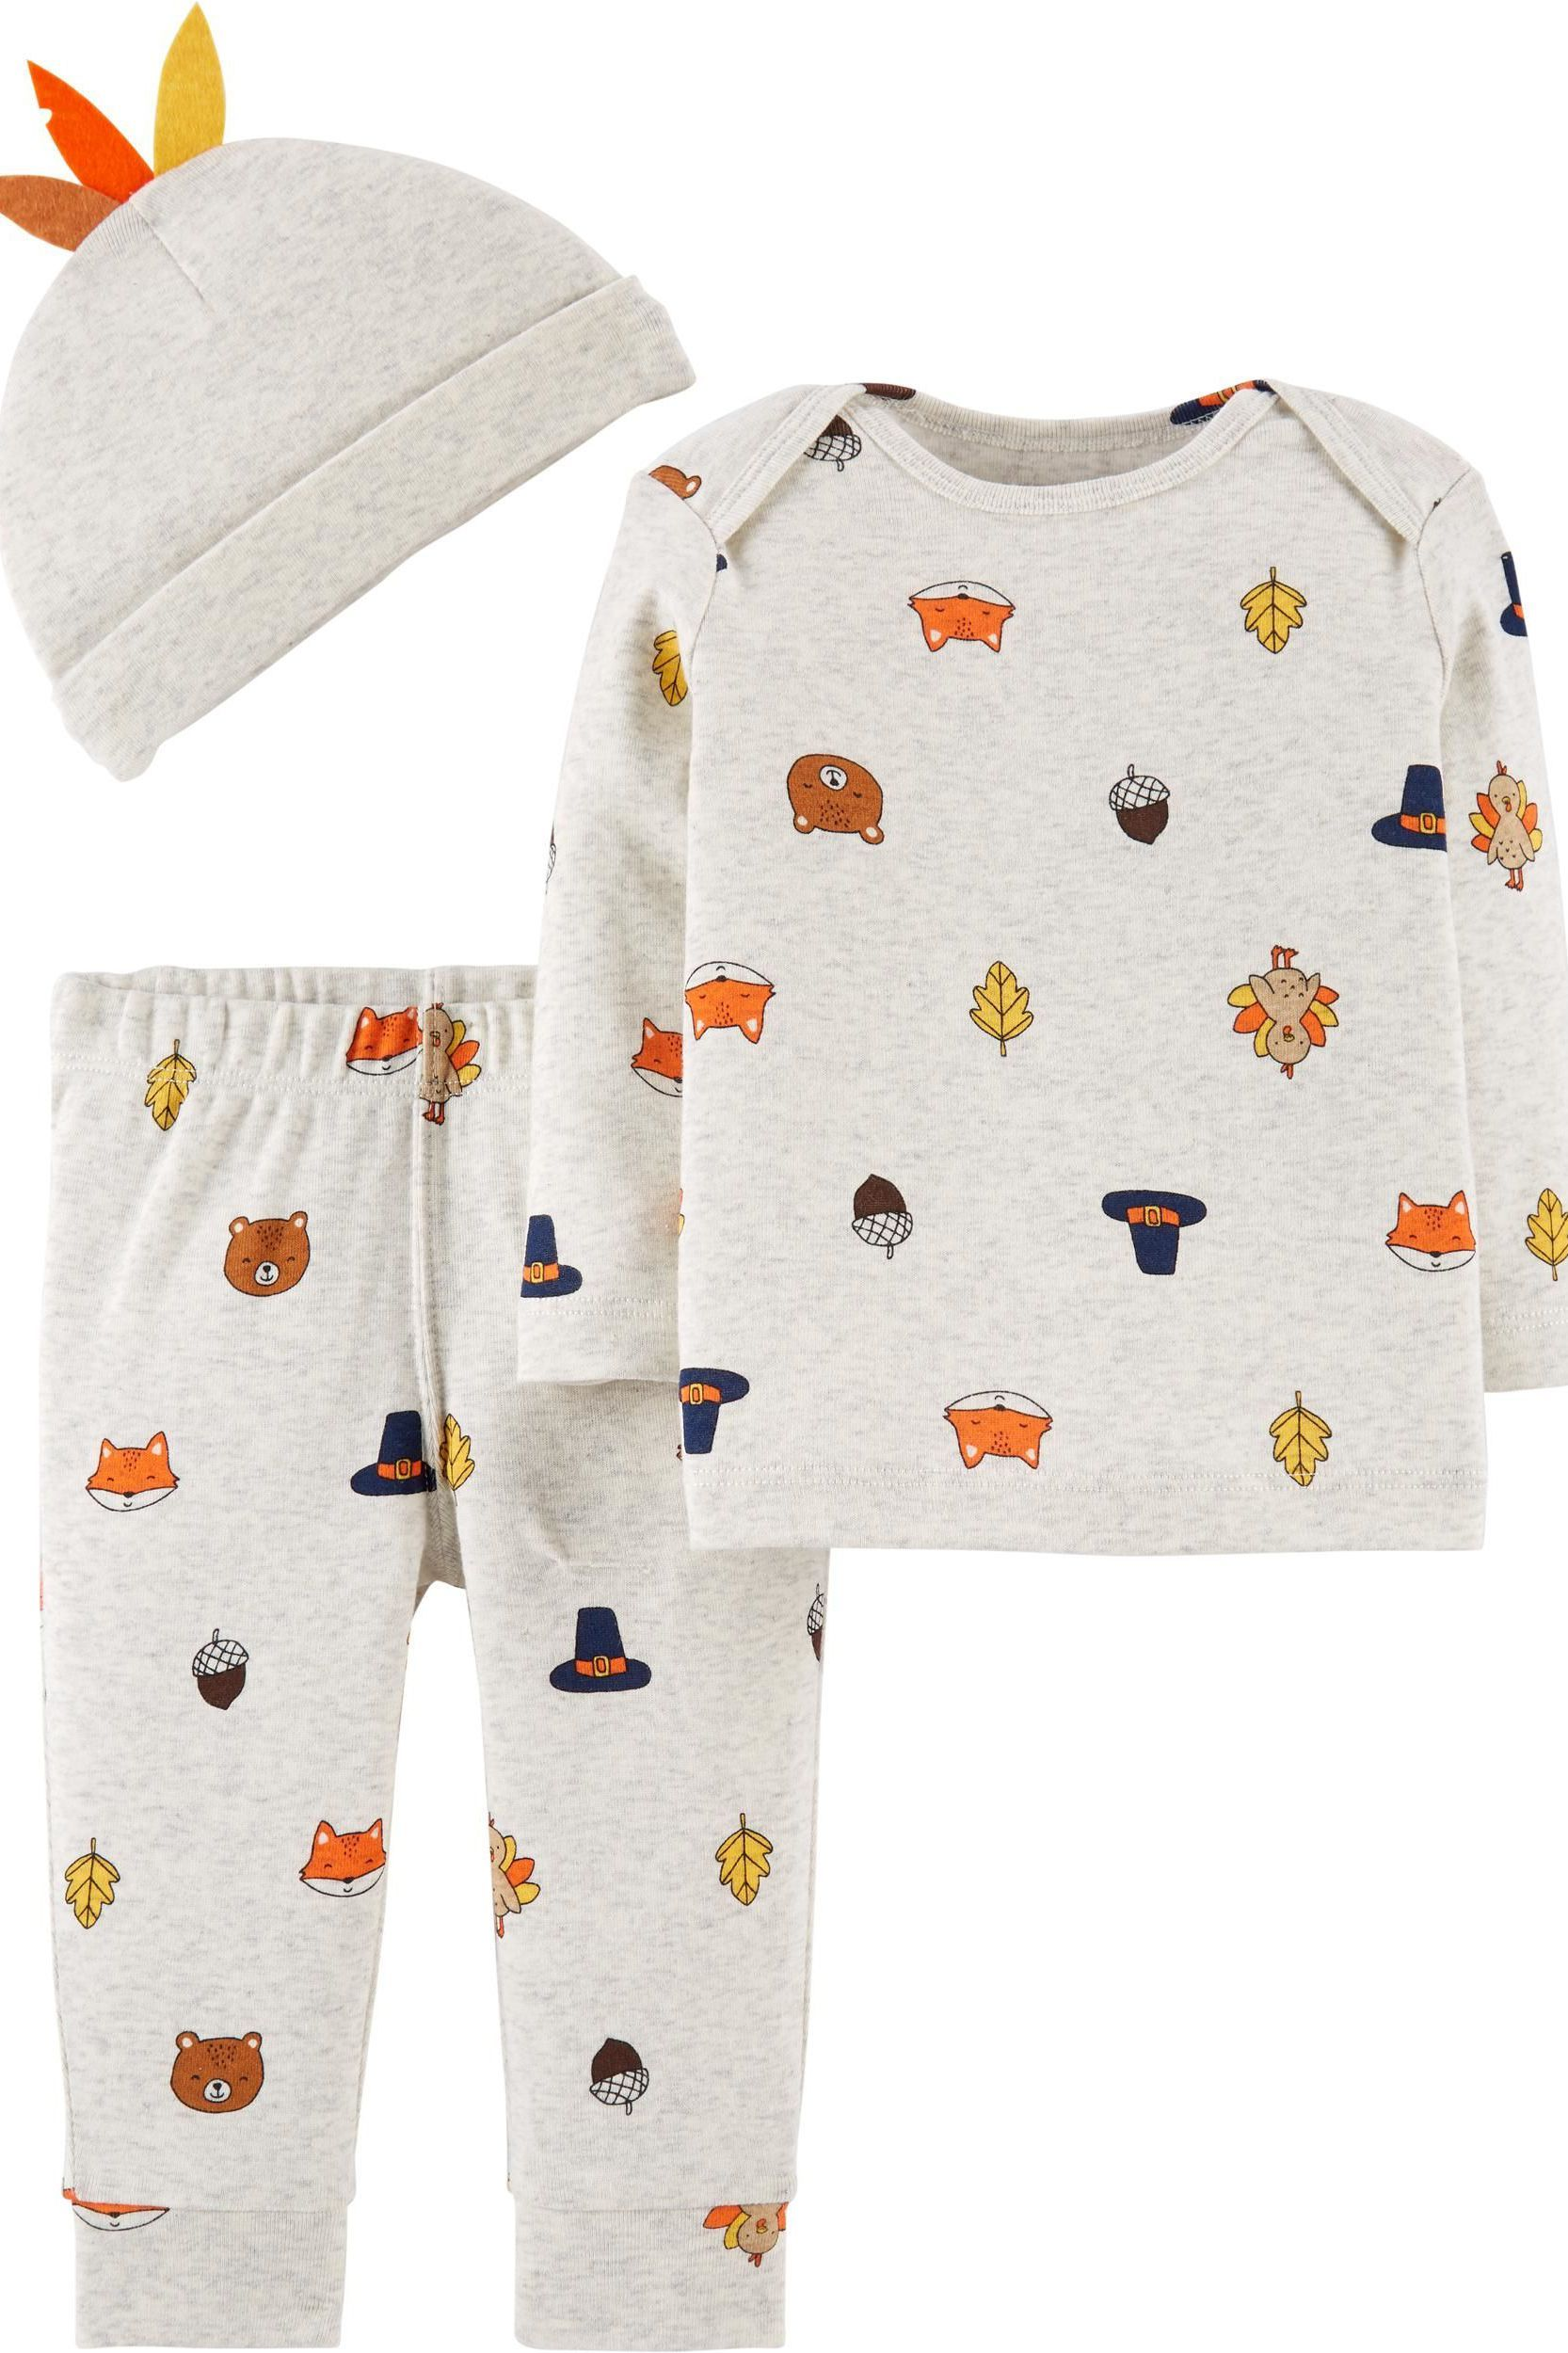 Baby Thanksgiving Outfits That You Ll Want To Gobble Right Up Thanksgiving Baby Outfits Baby Girl Thanksgiving Outfit Kids Outfits